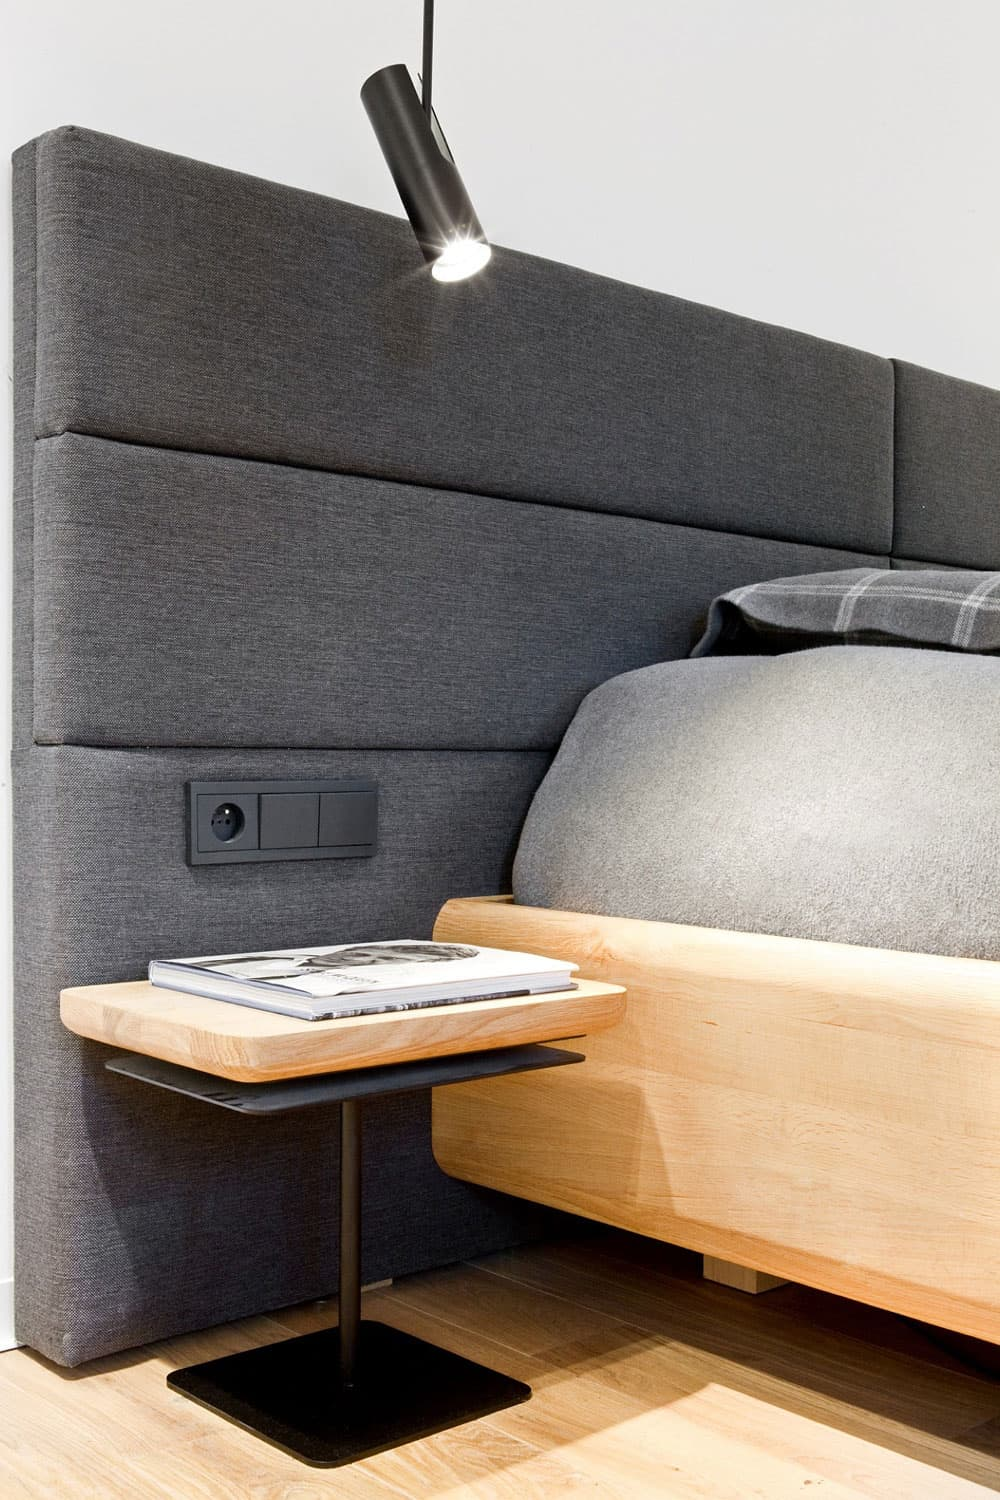 Soft upholstered headboard includes an electric outlet and light switches